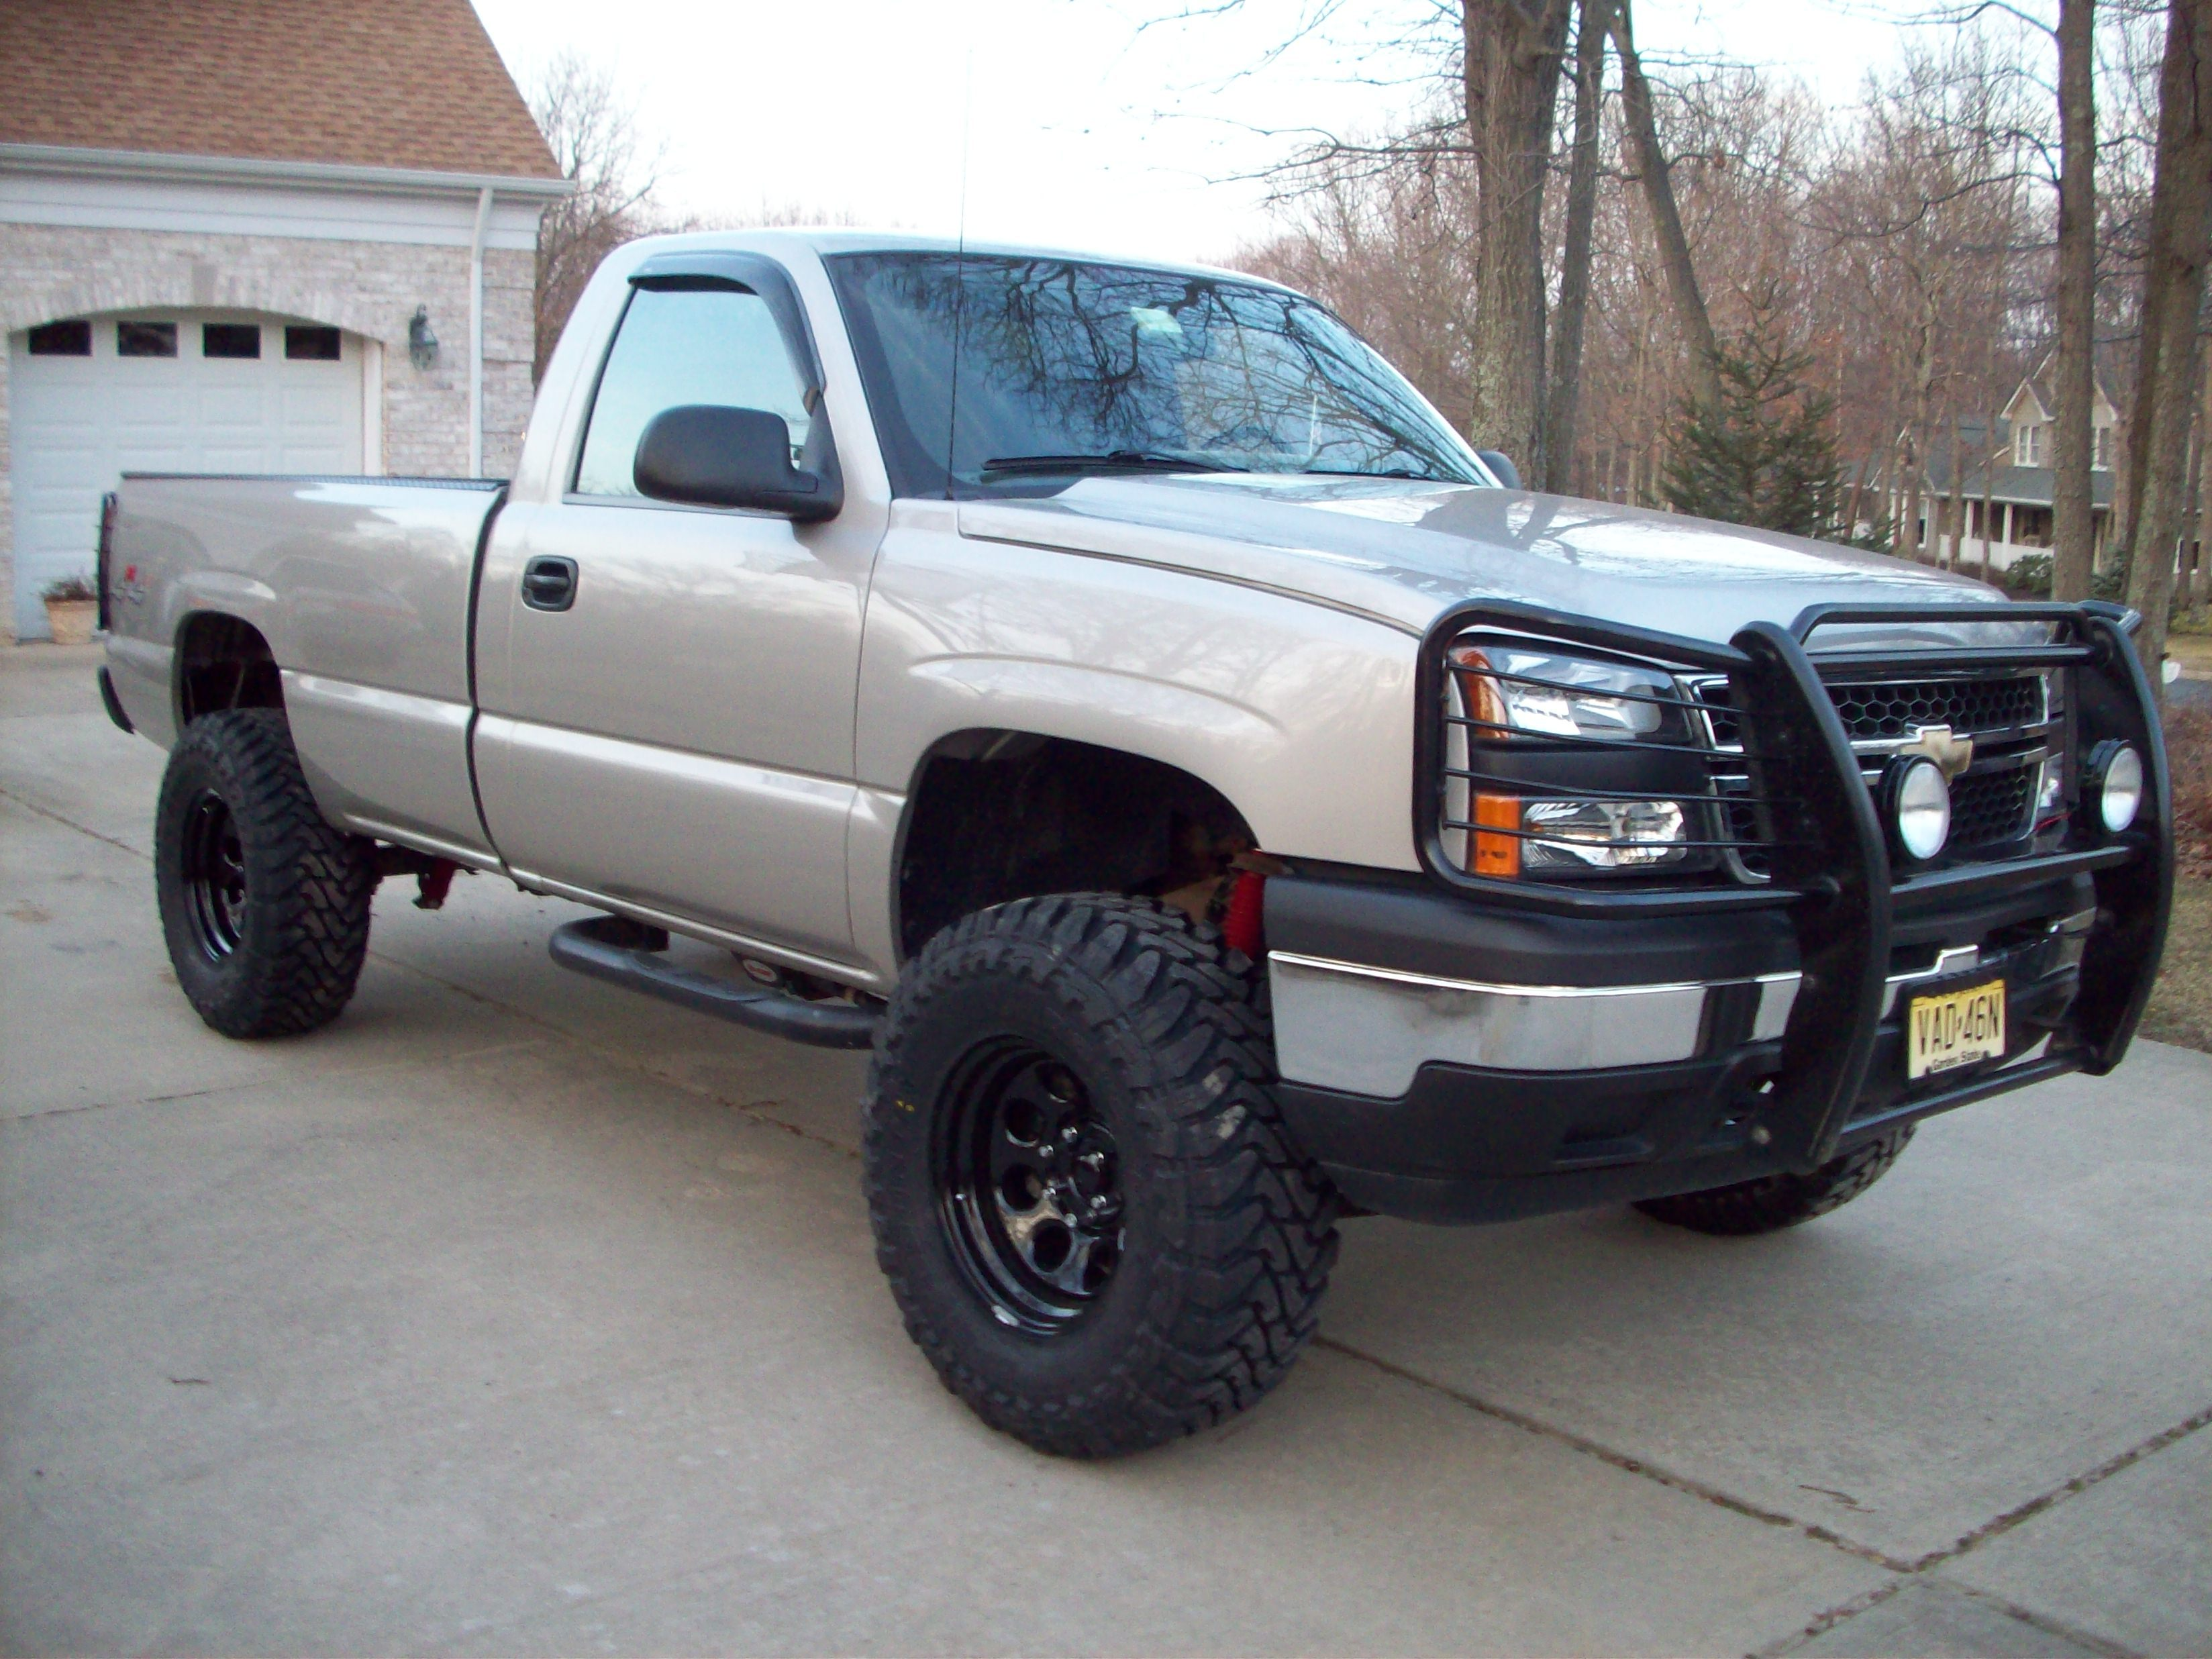 wrecking-crew's 2006 Chevrolet Silverado 1500 Regular Cab in Wall, NJ